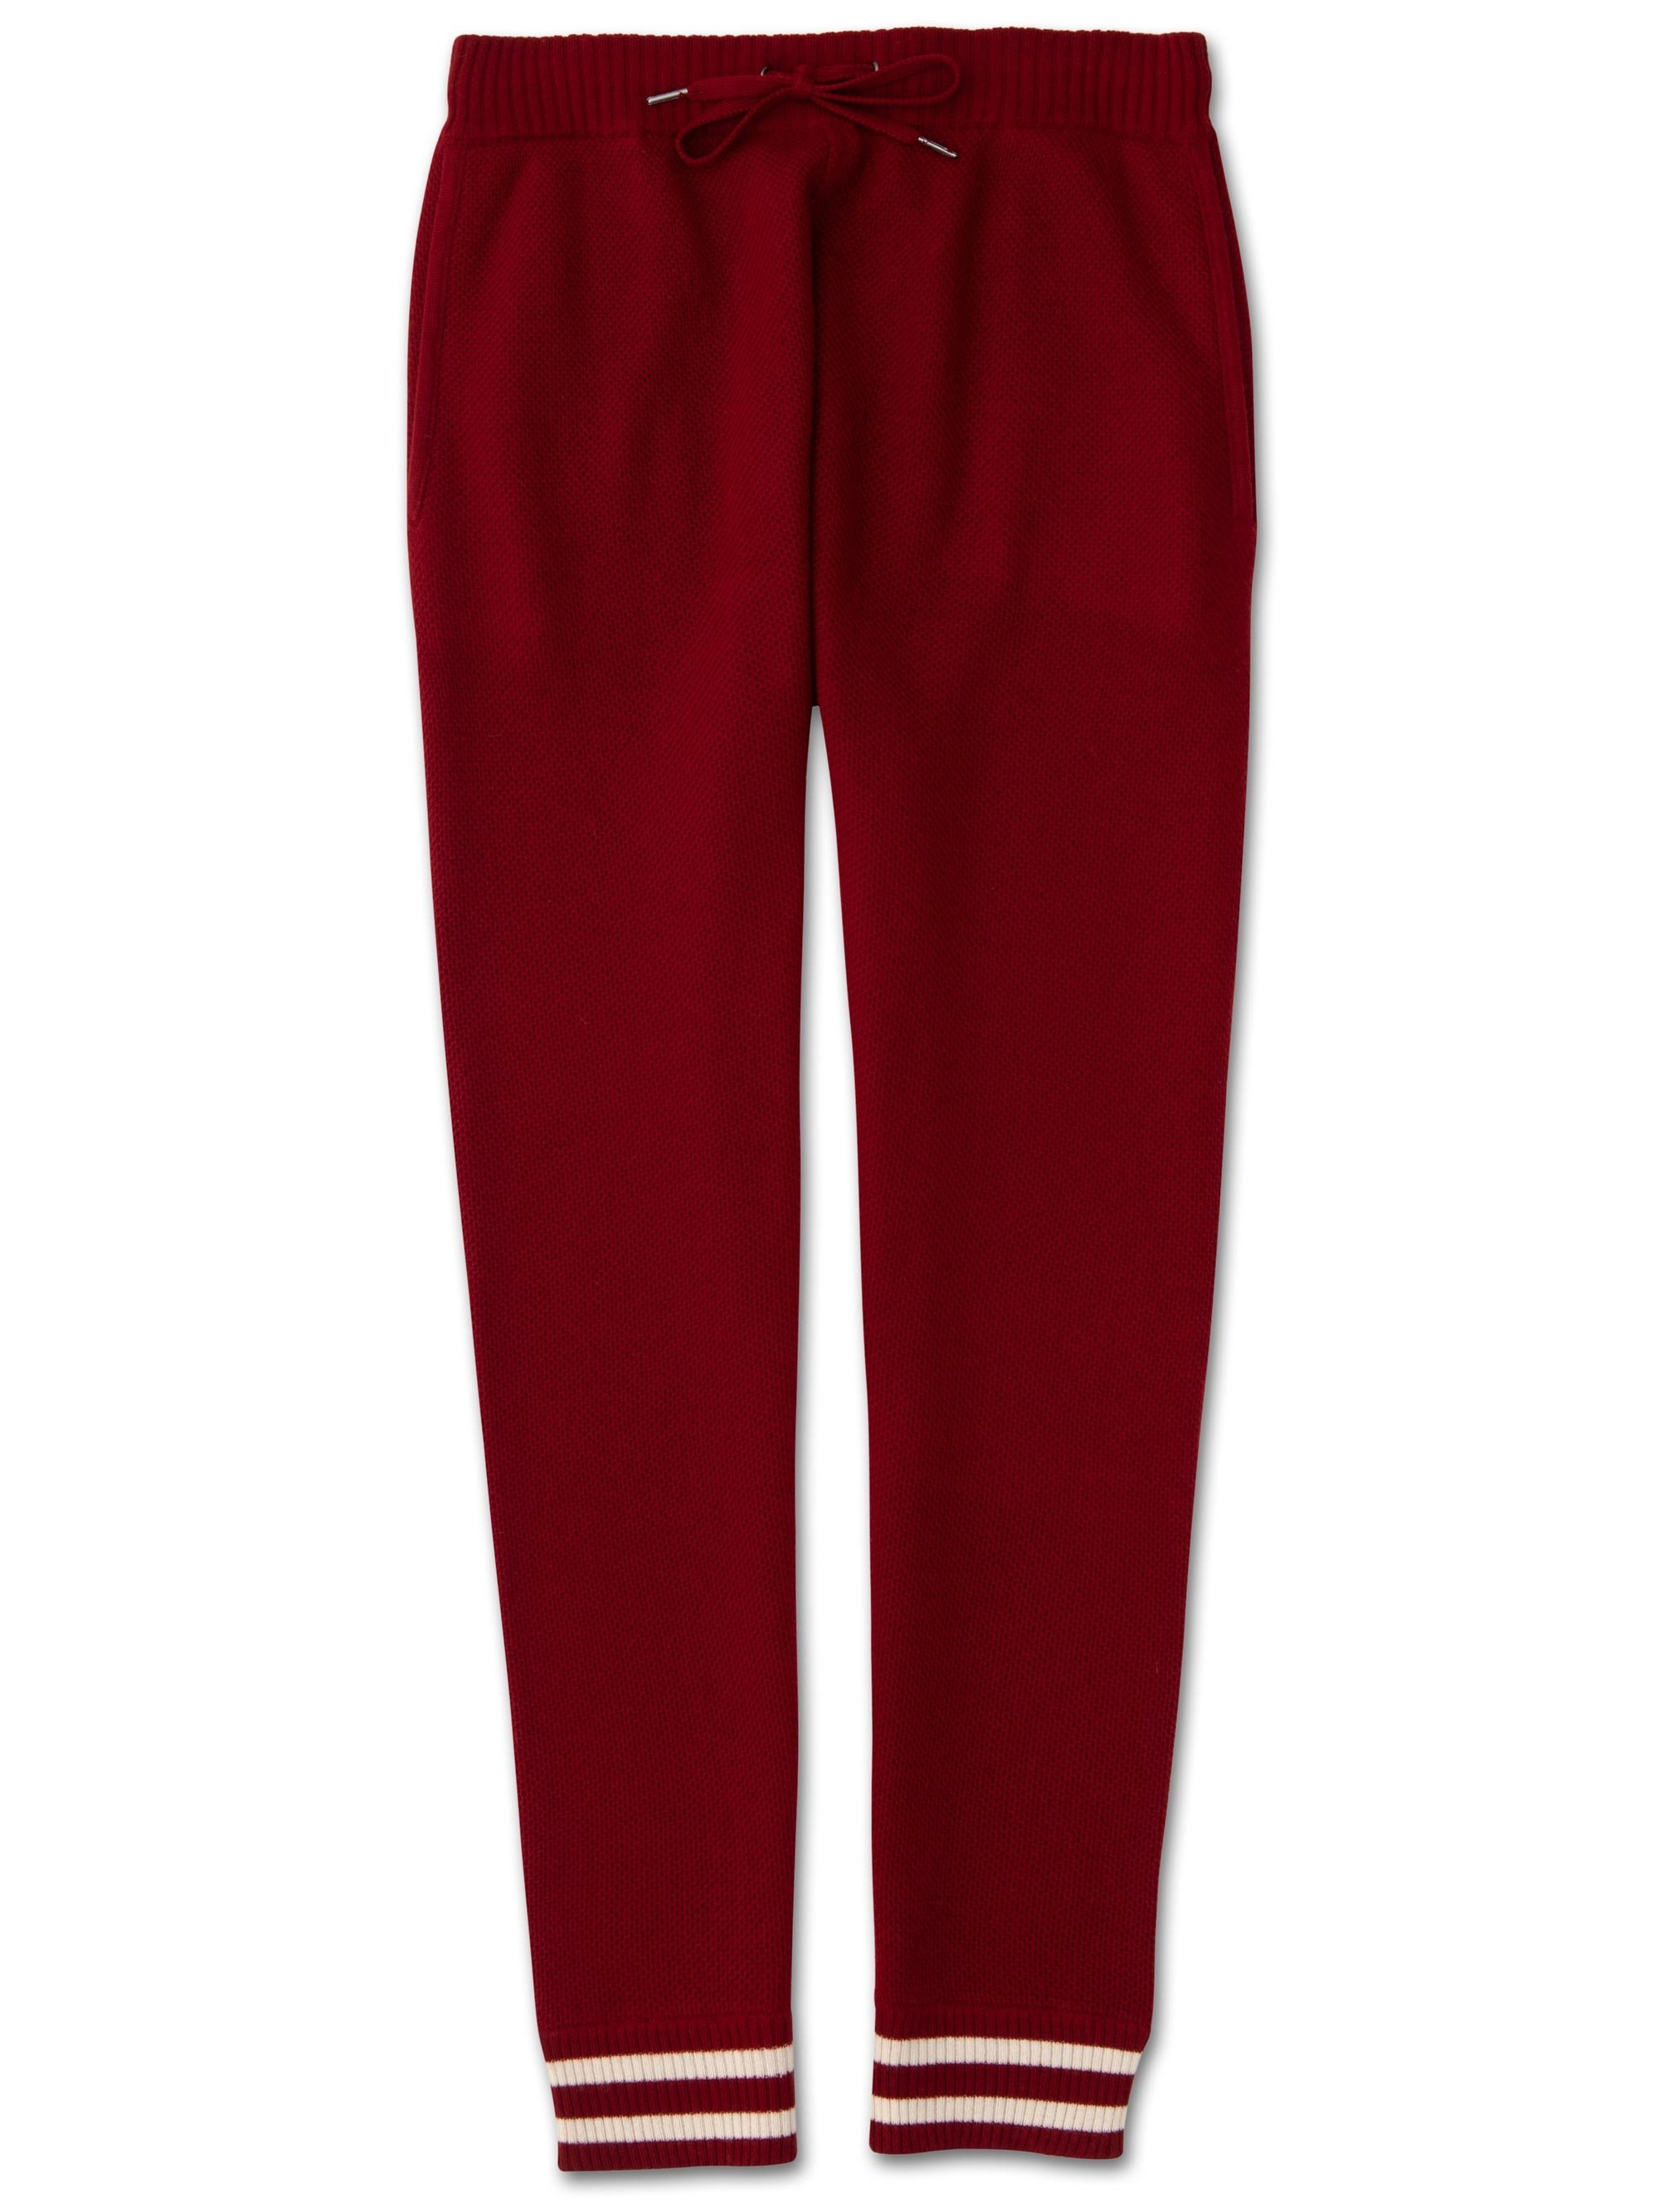 Men's Cashmere Track Pants Felix 2 Pure Cashmere Red